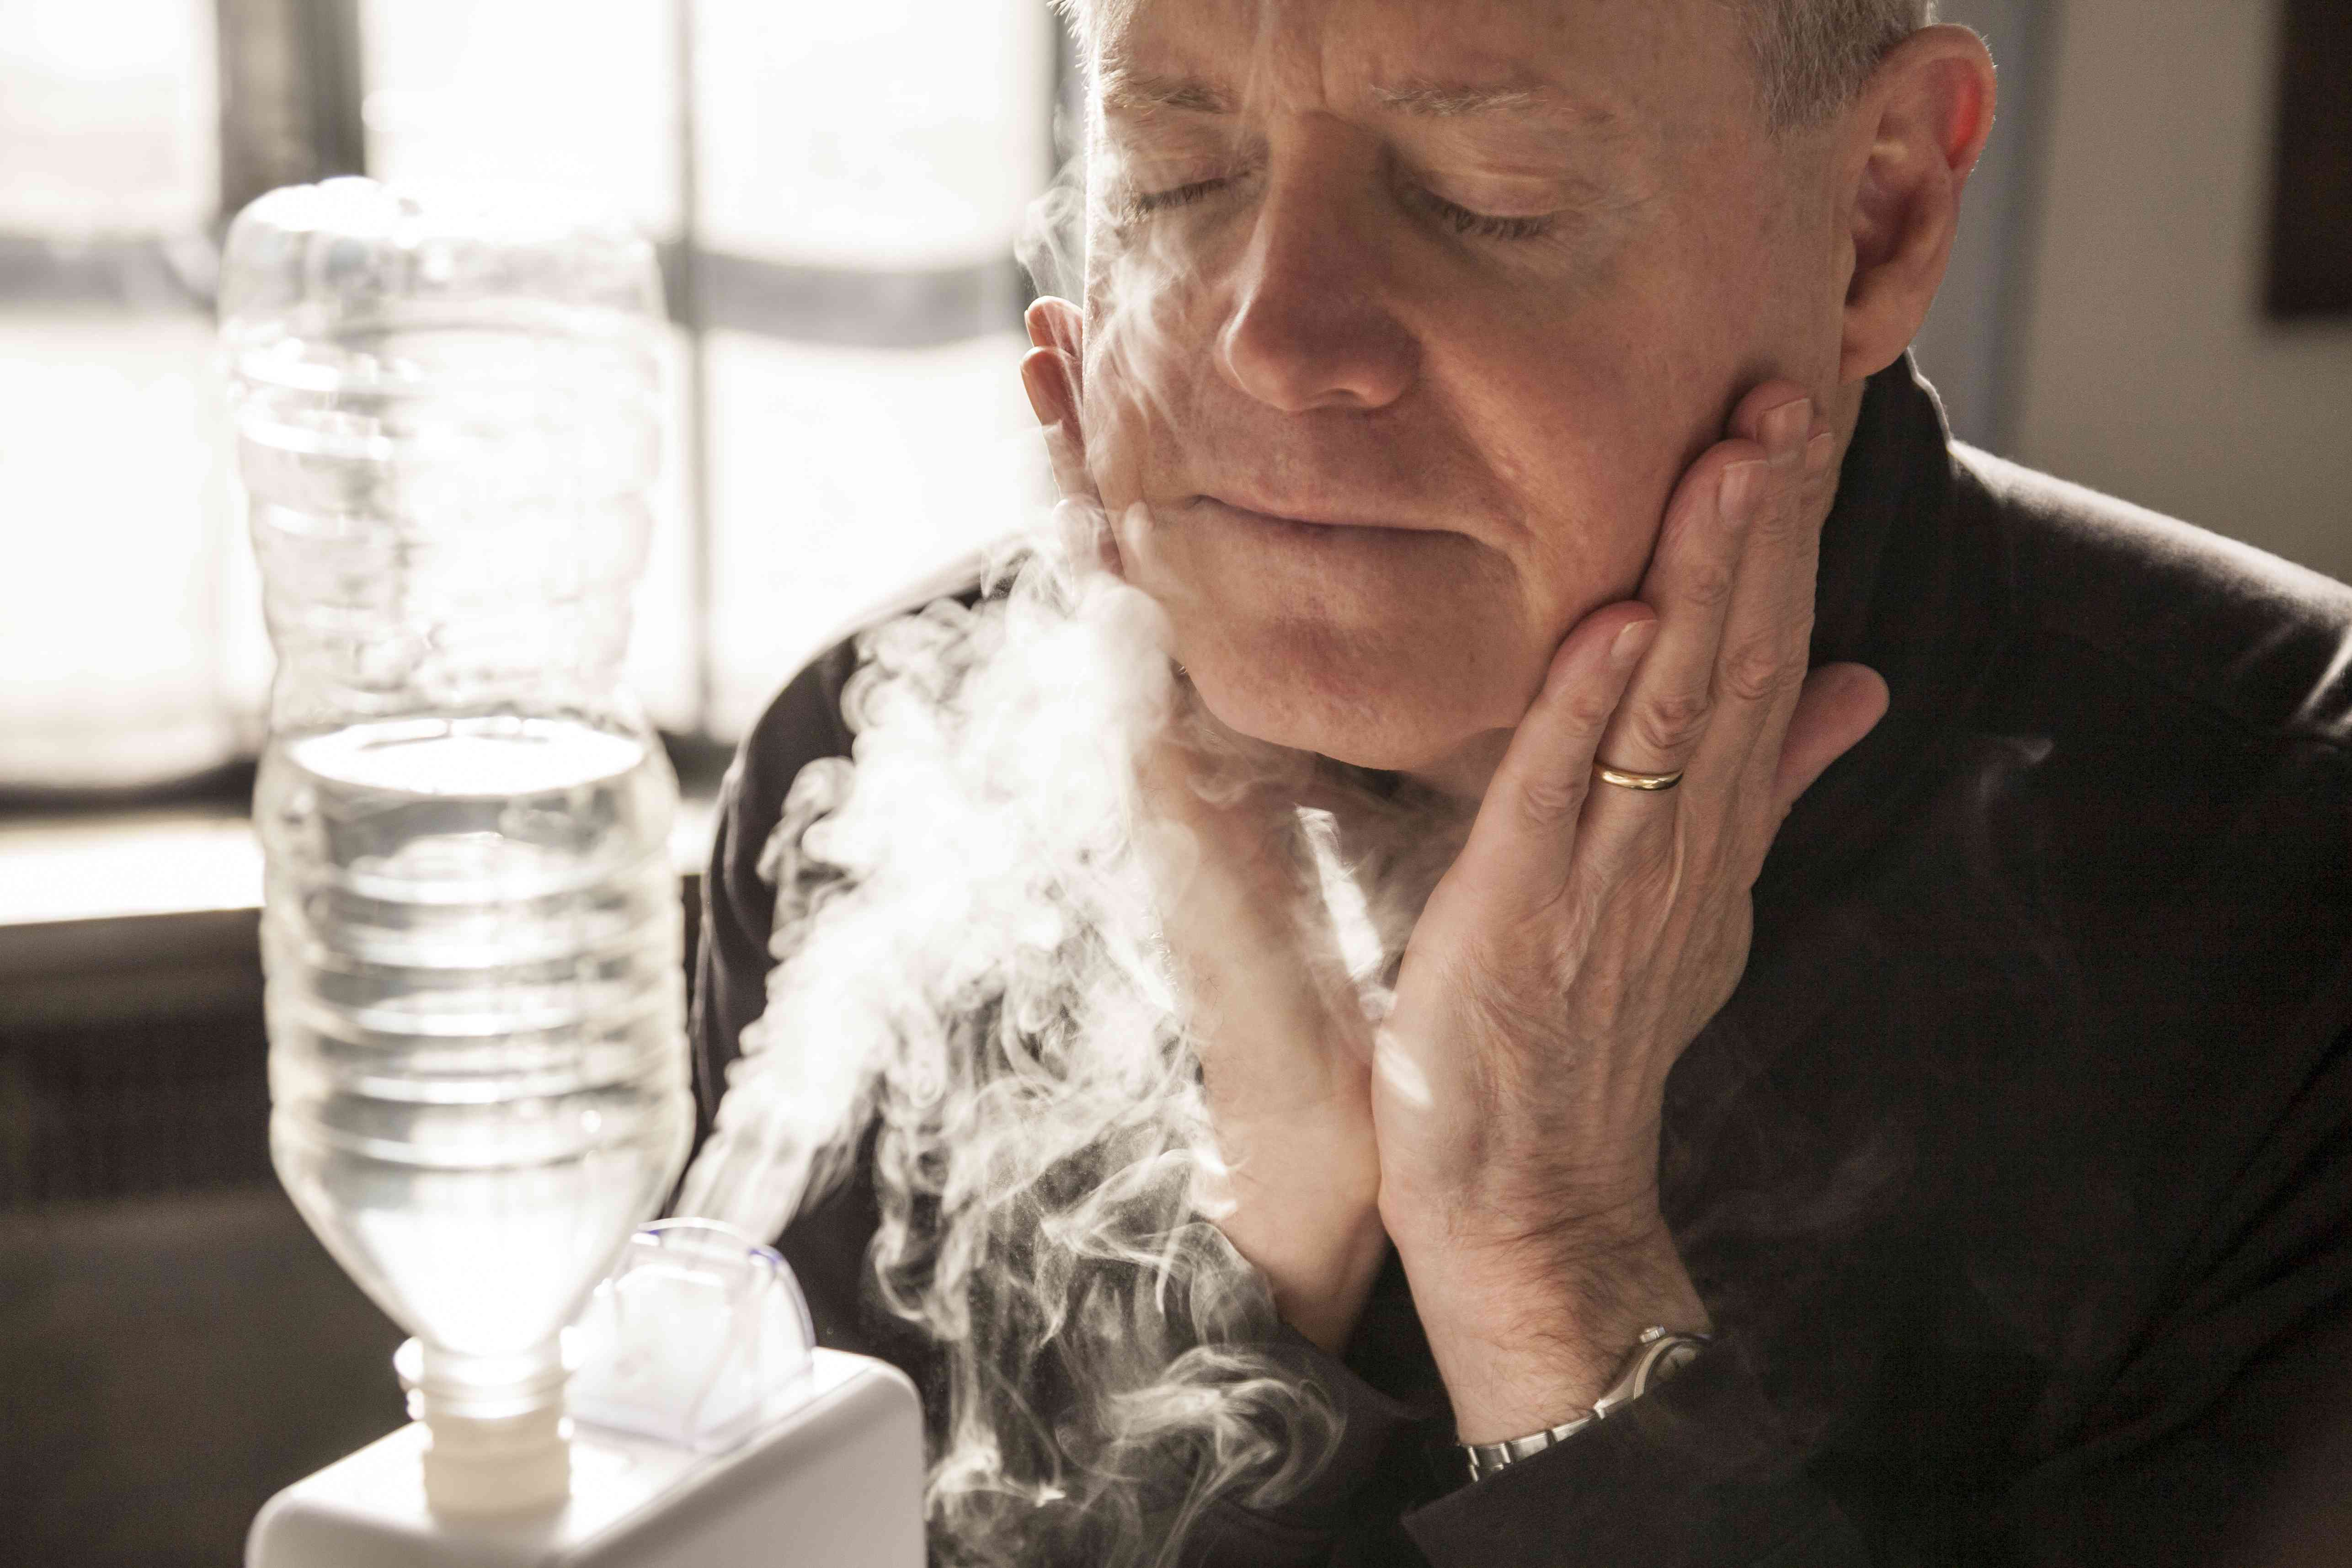 Mature man hydrates with home humidifier